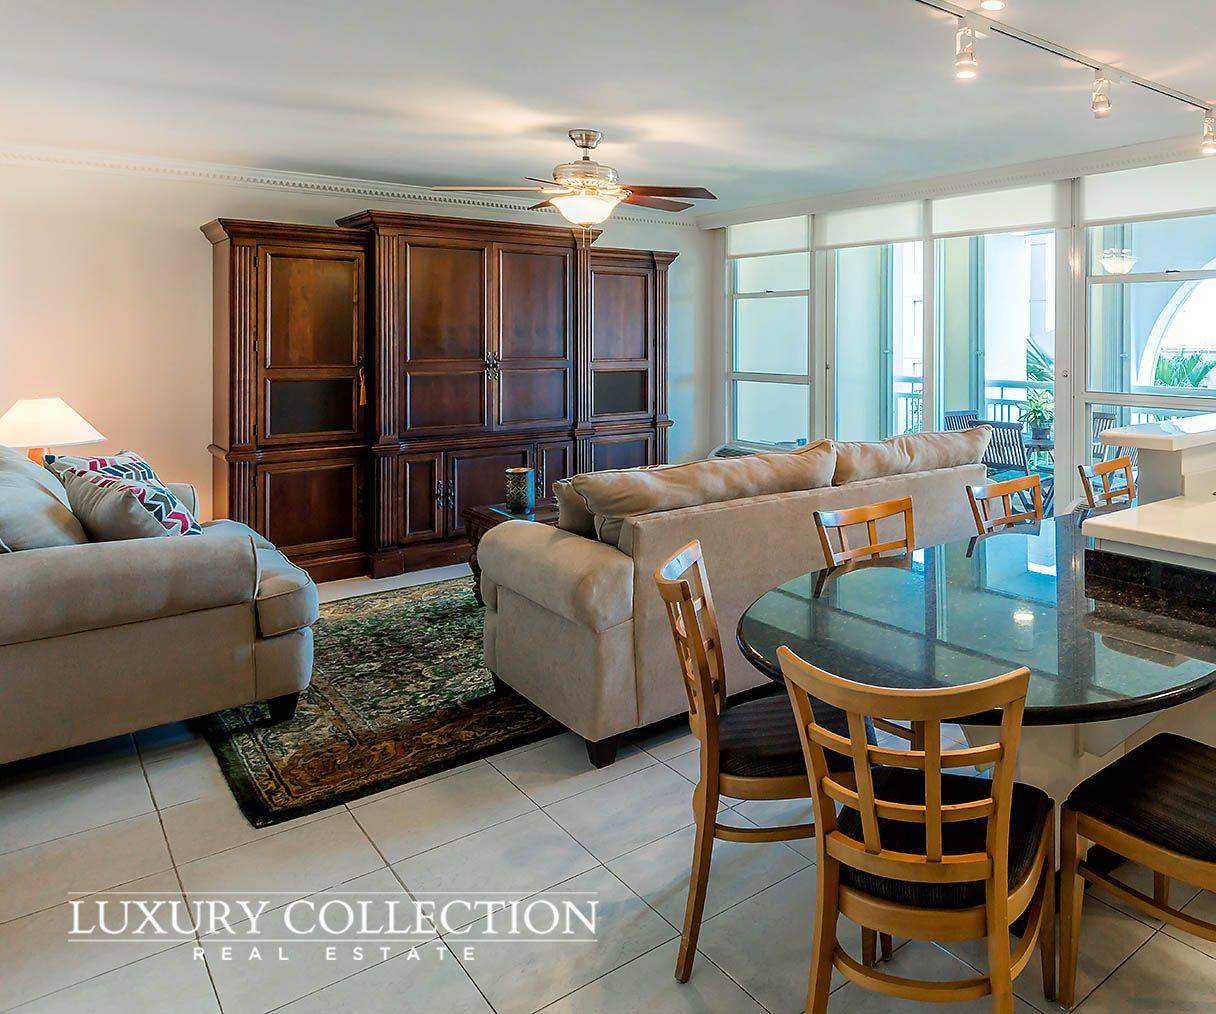 Carrion Ct Luxury Collection T Luxury Collection Real Estate